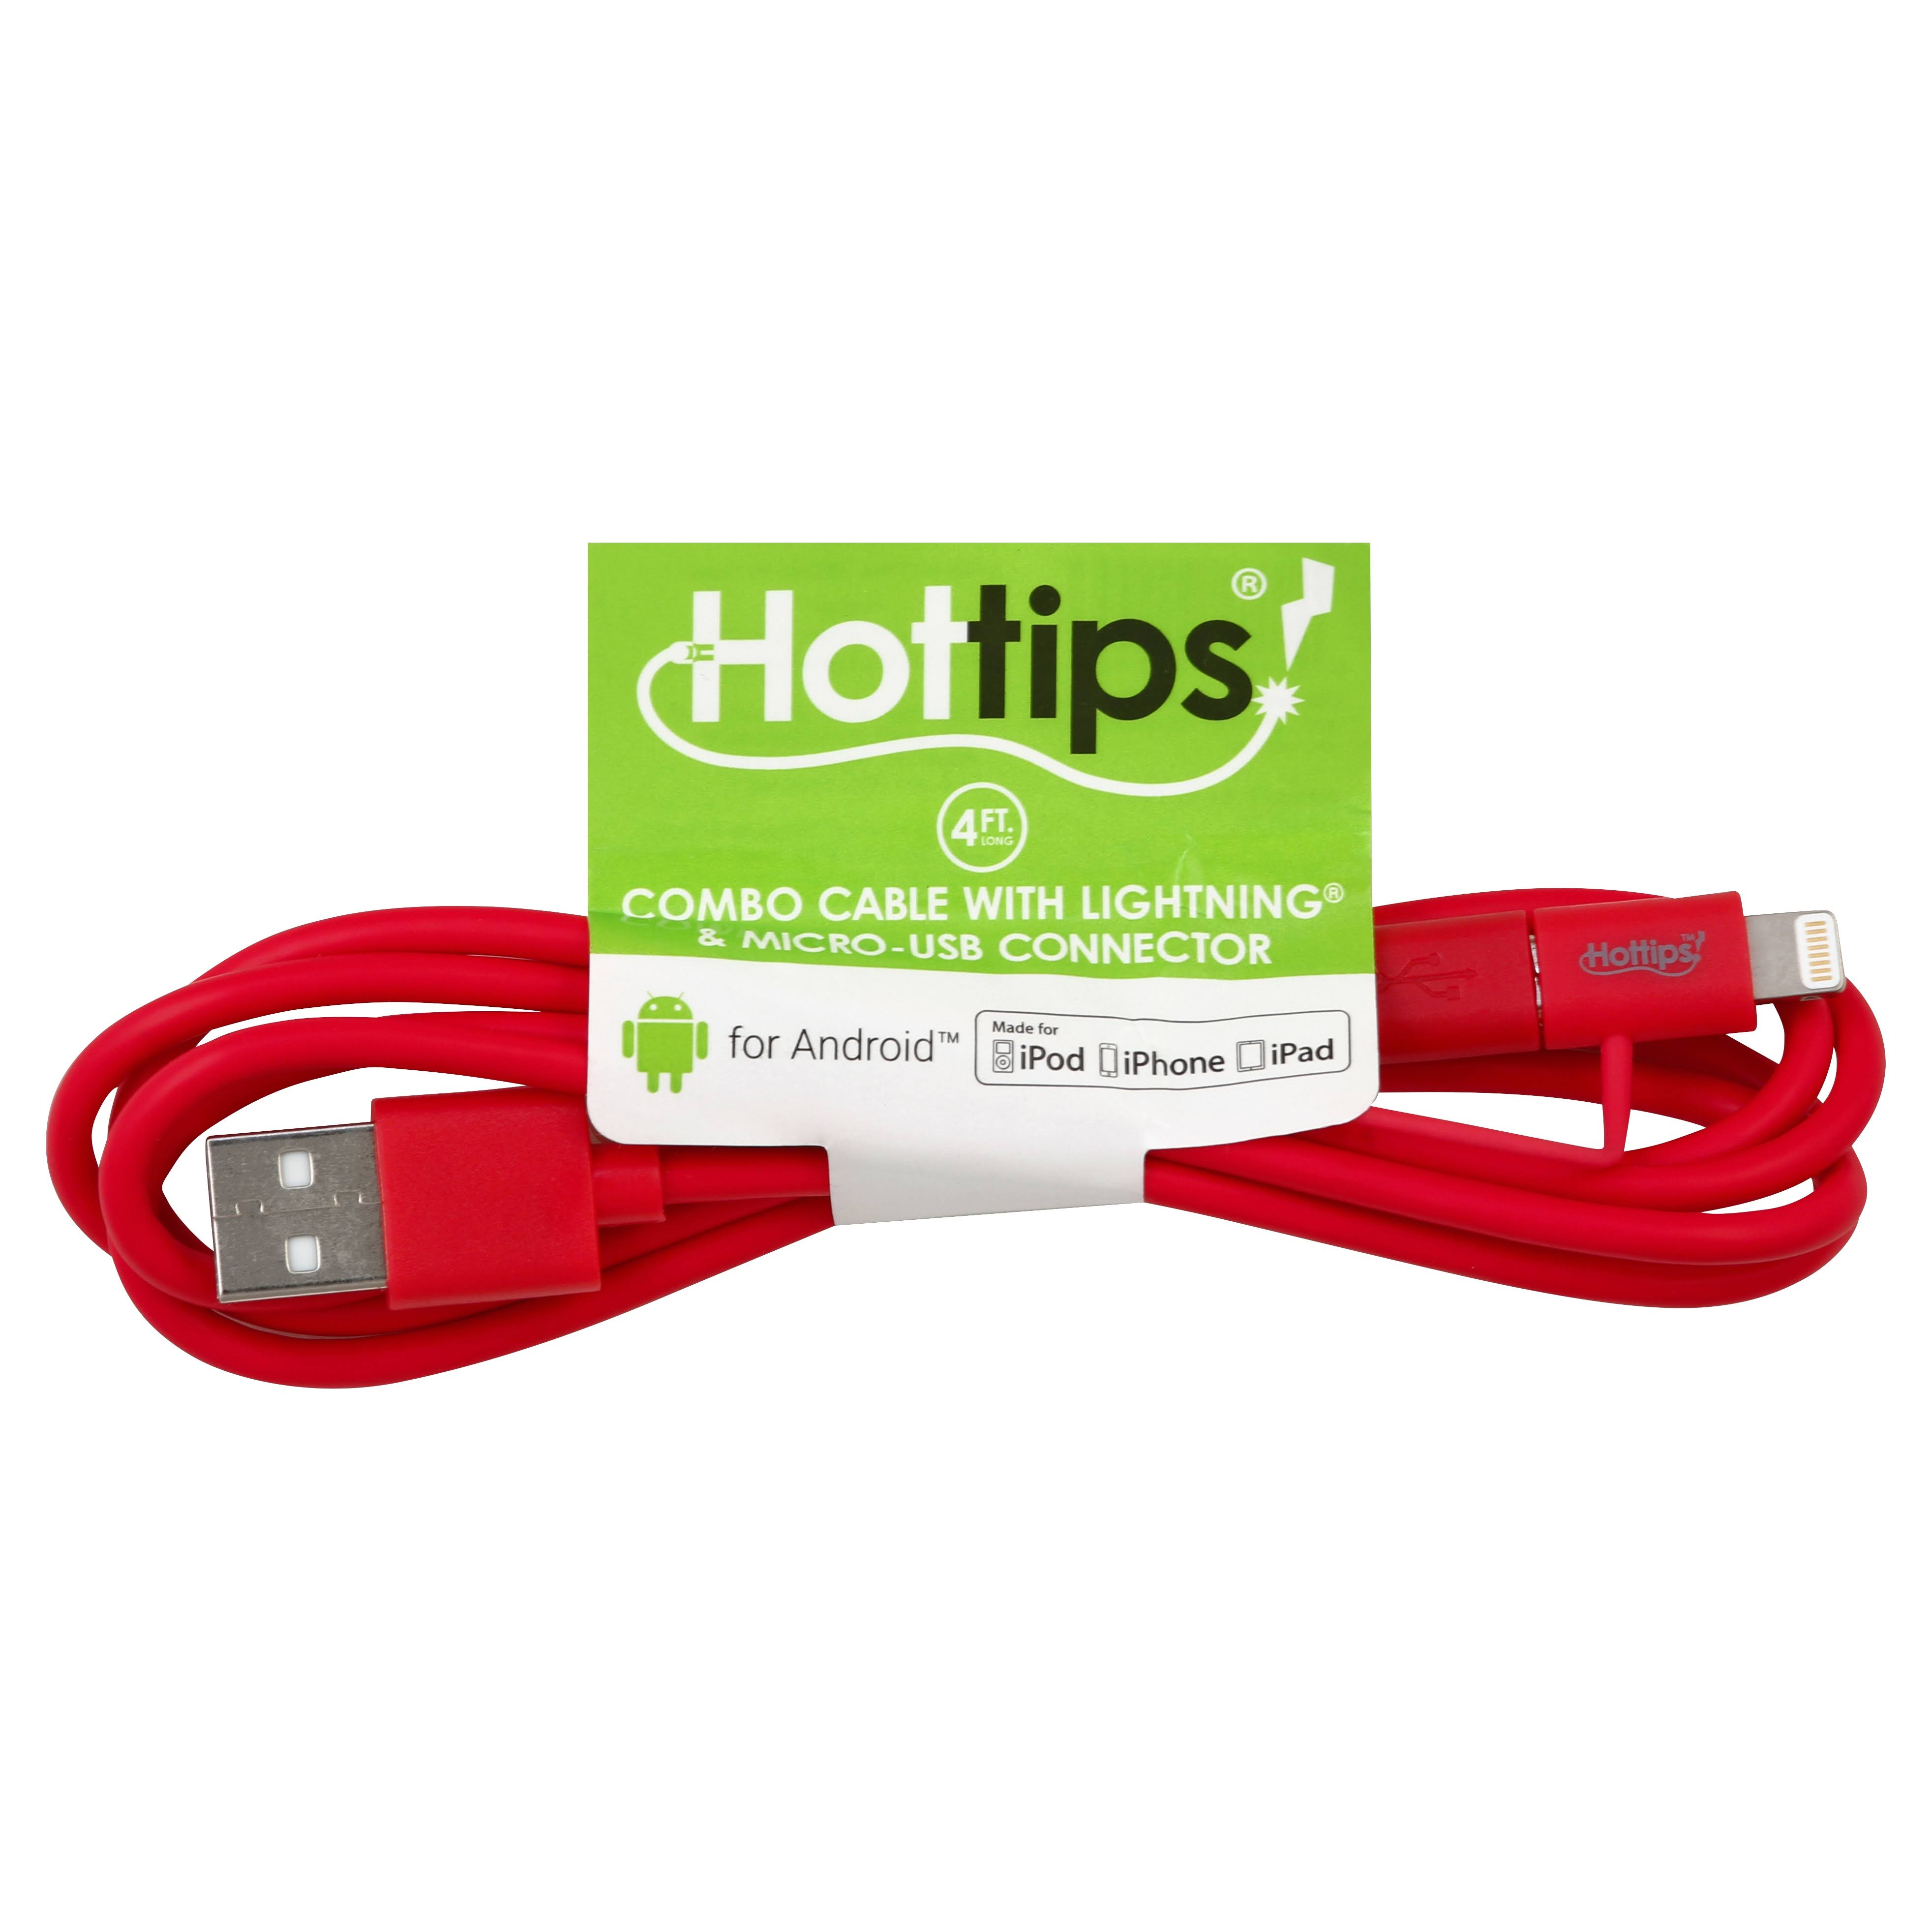 Hottips Combo Cable, with Lightning & Micro-USB Connector, 4 Foot